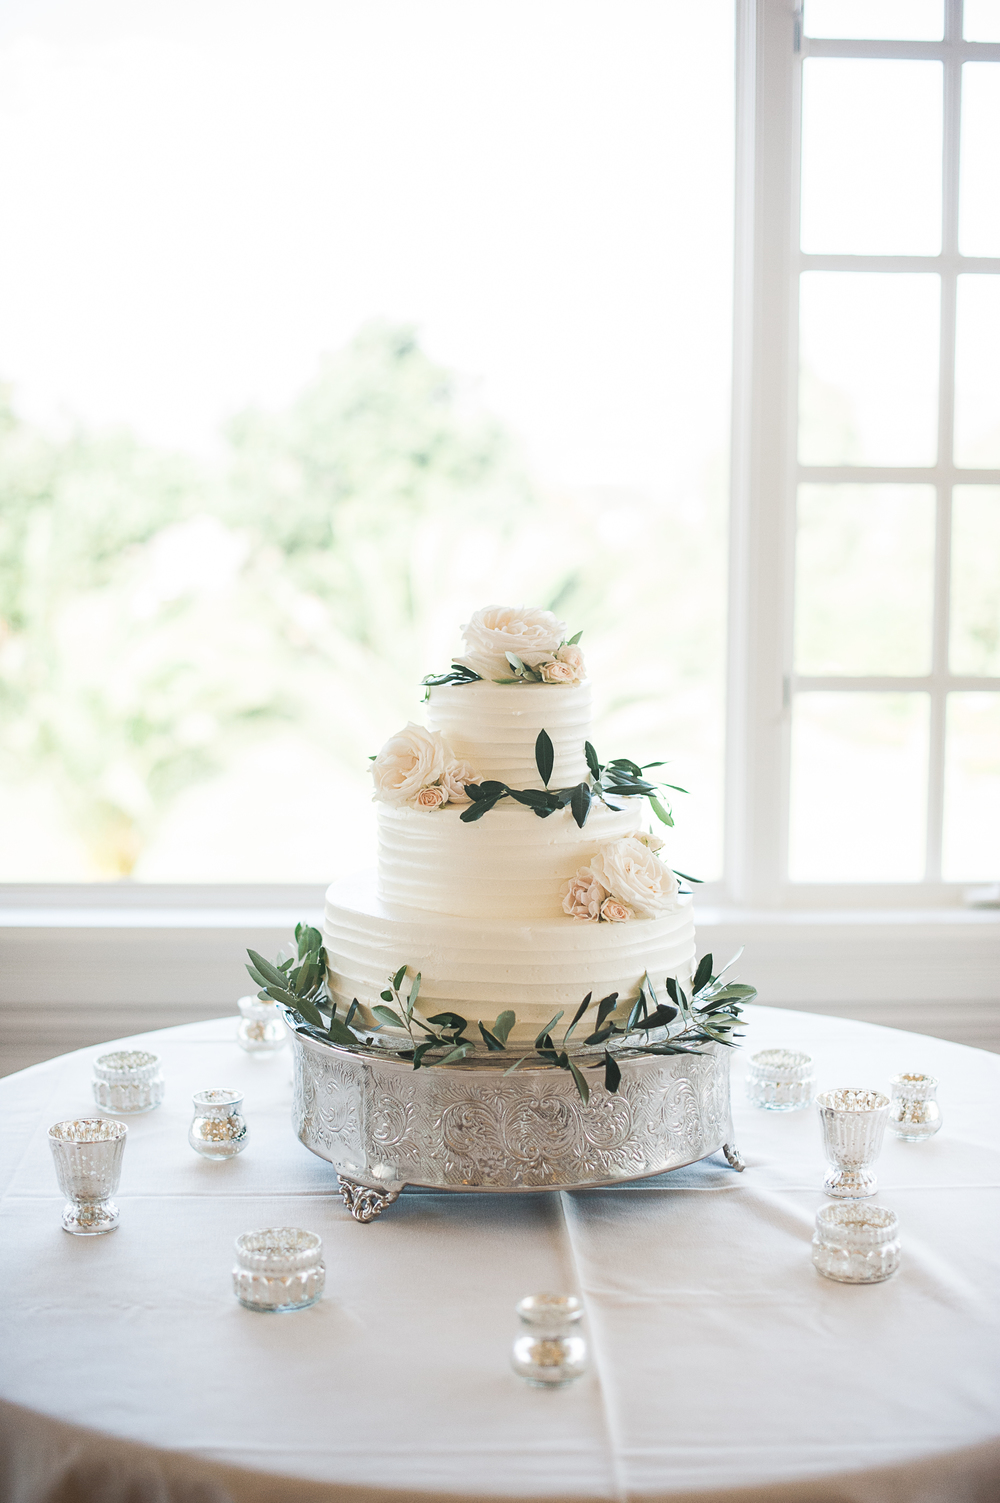 Olive branch cake decorated by San Diego wedding florist, Compass Floral.